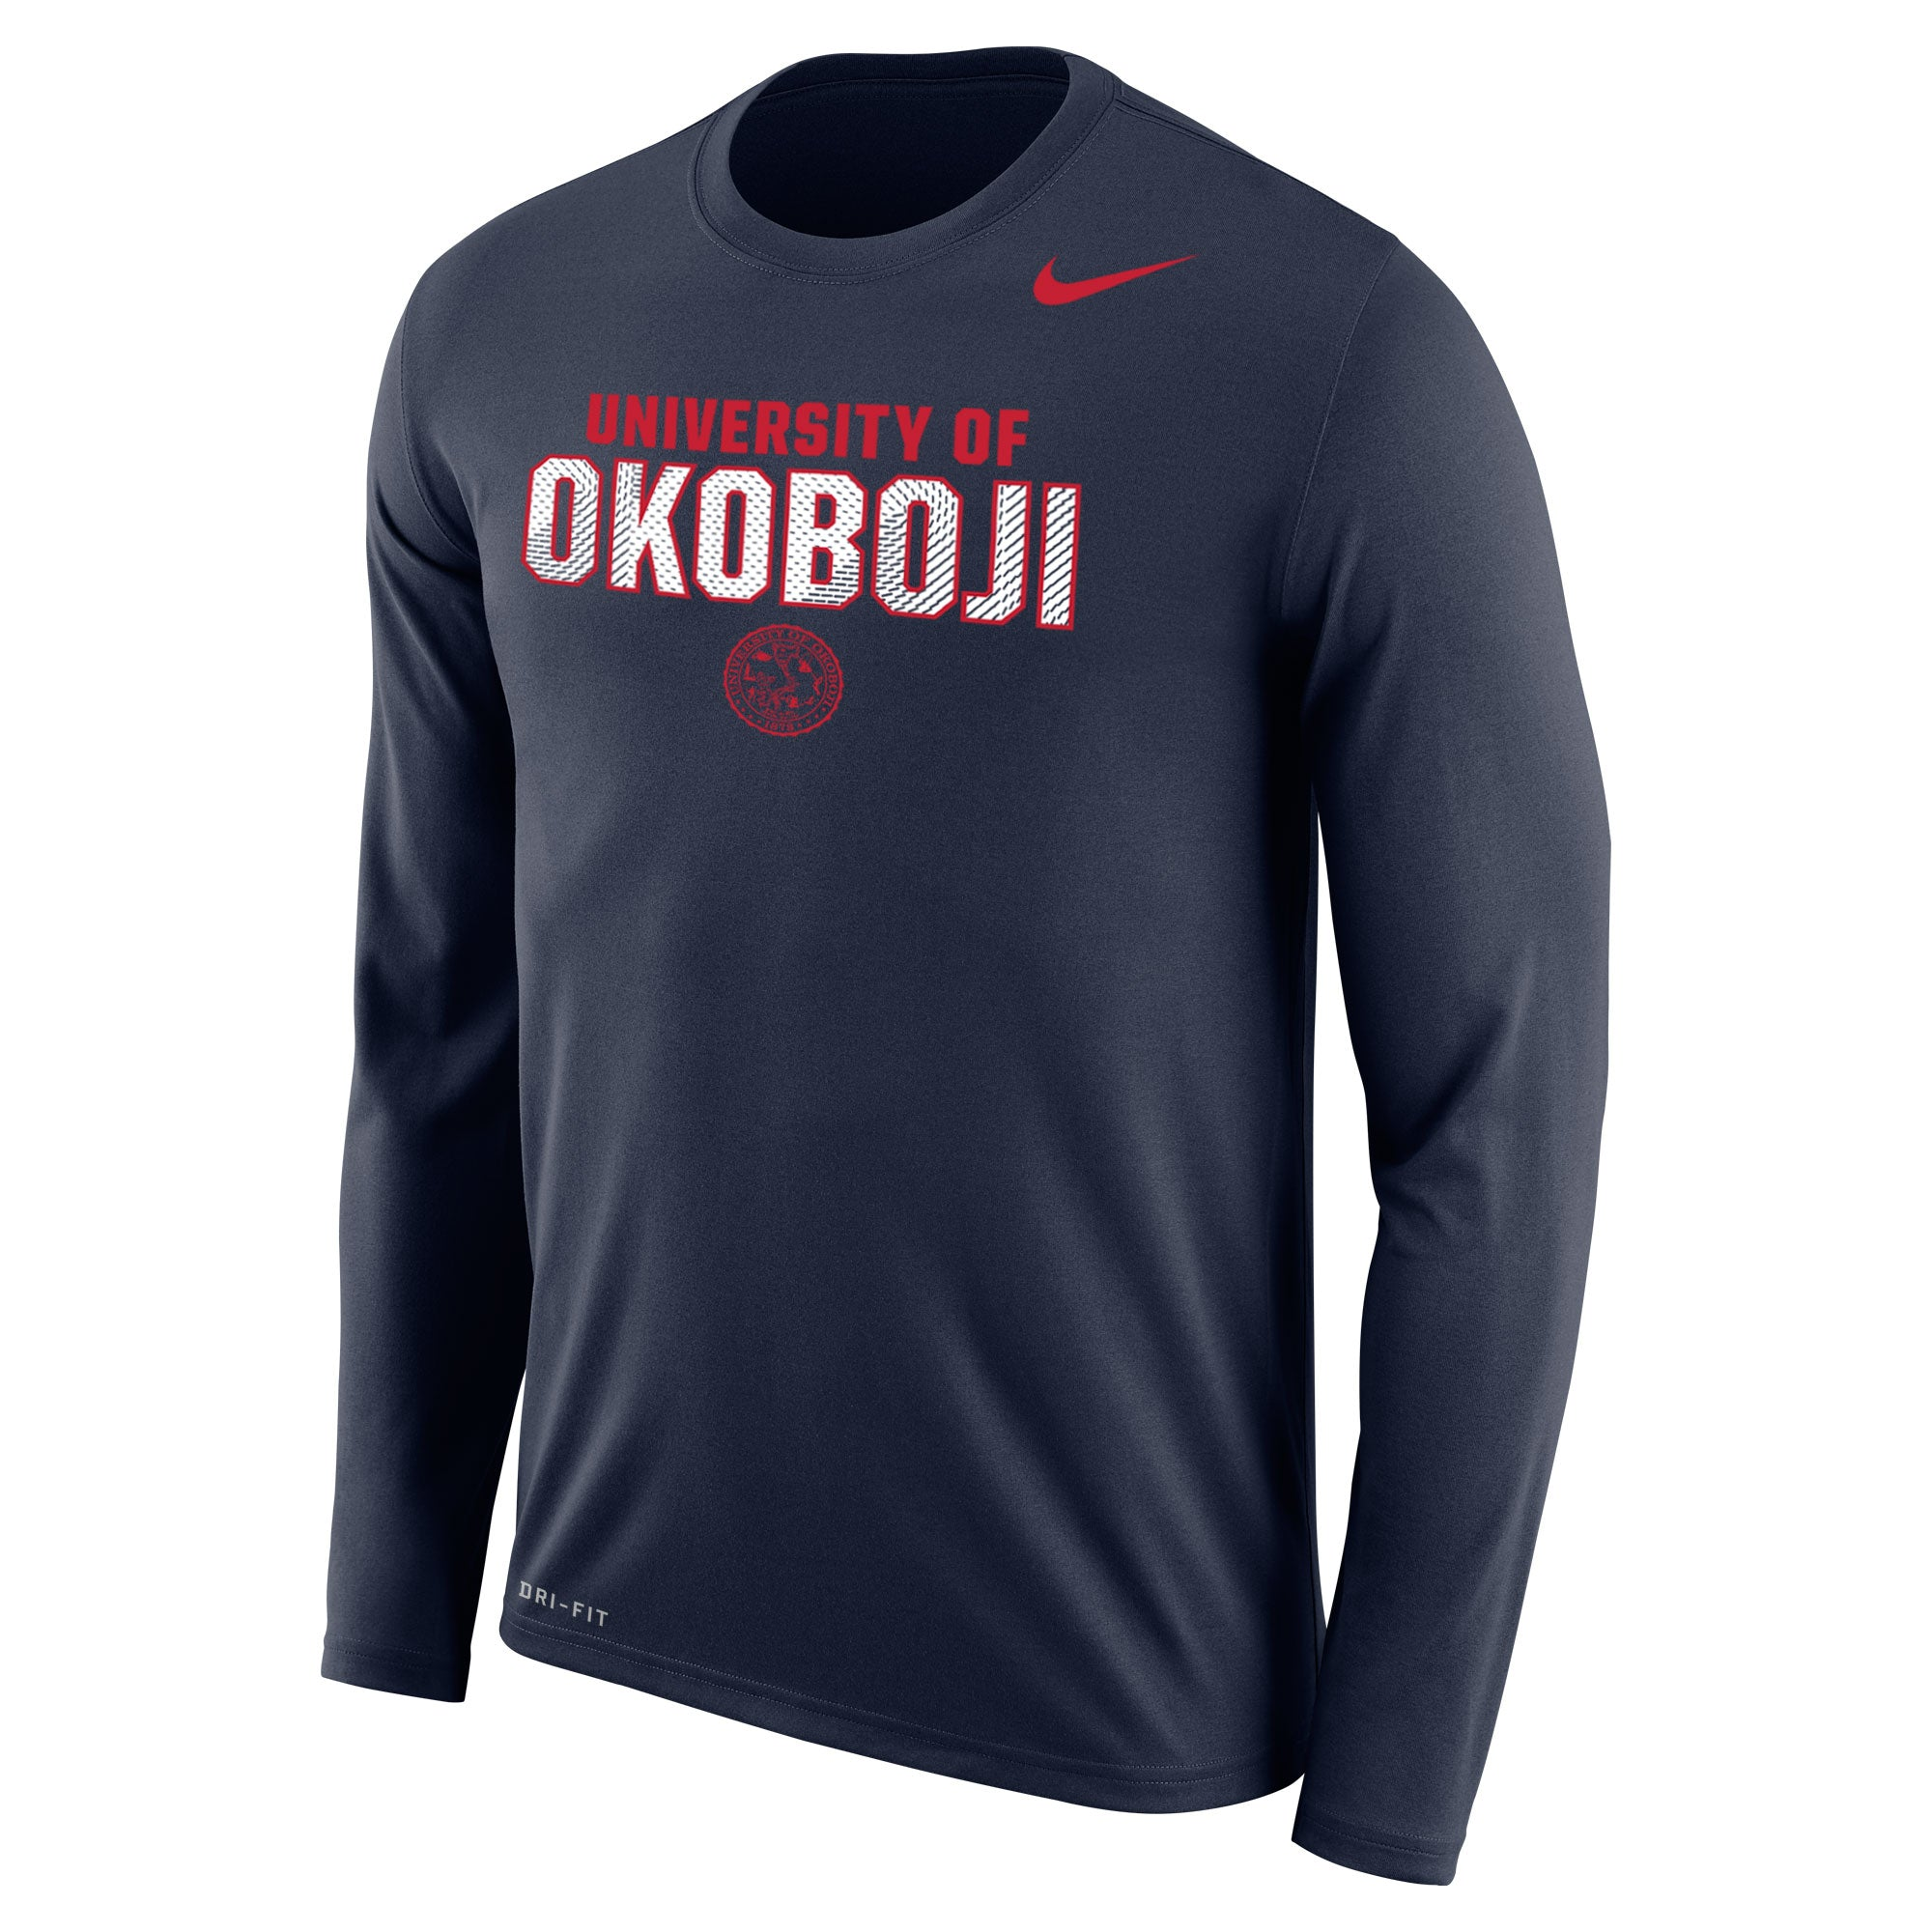 Men's Nike Dri-Fit Legend 2.0 Long Sleeve Tee